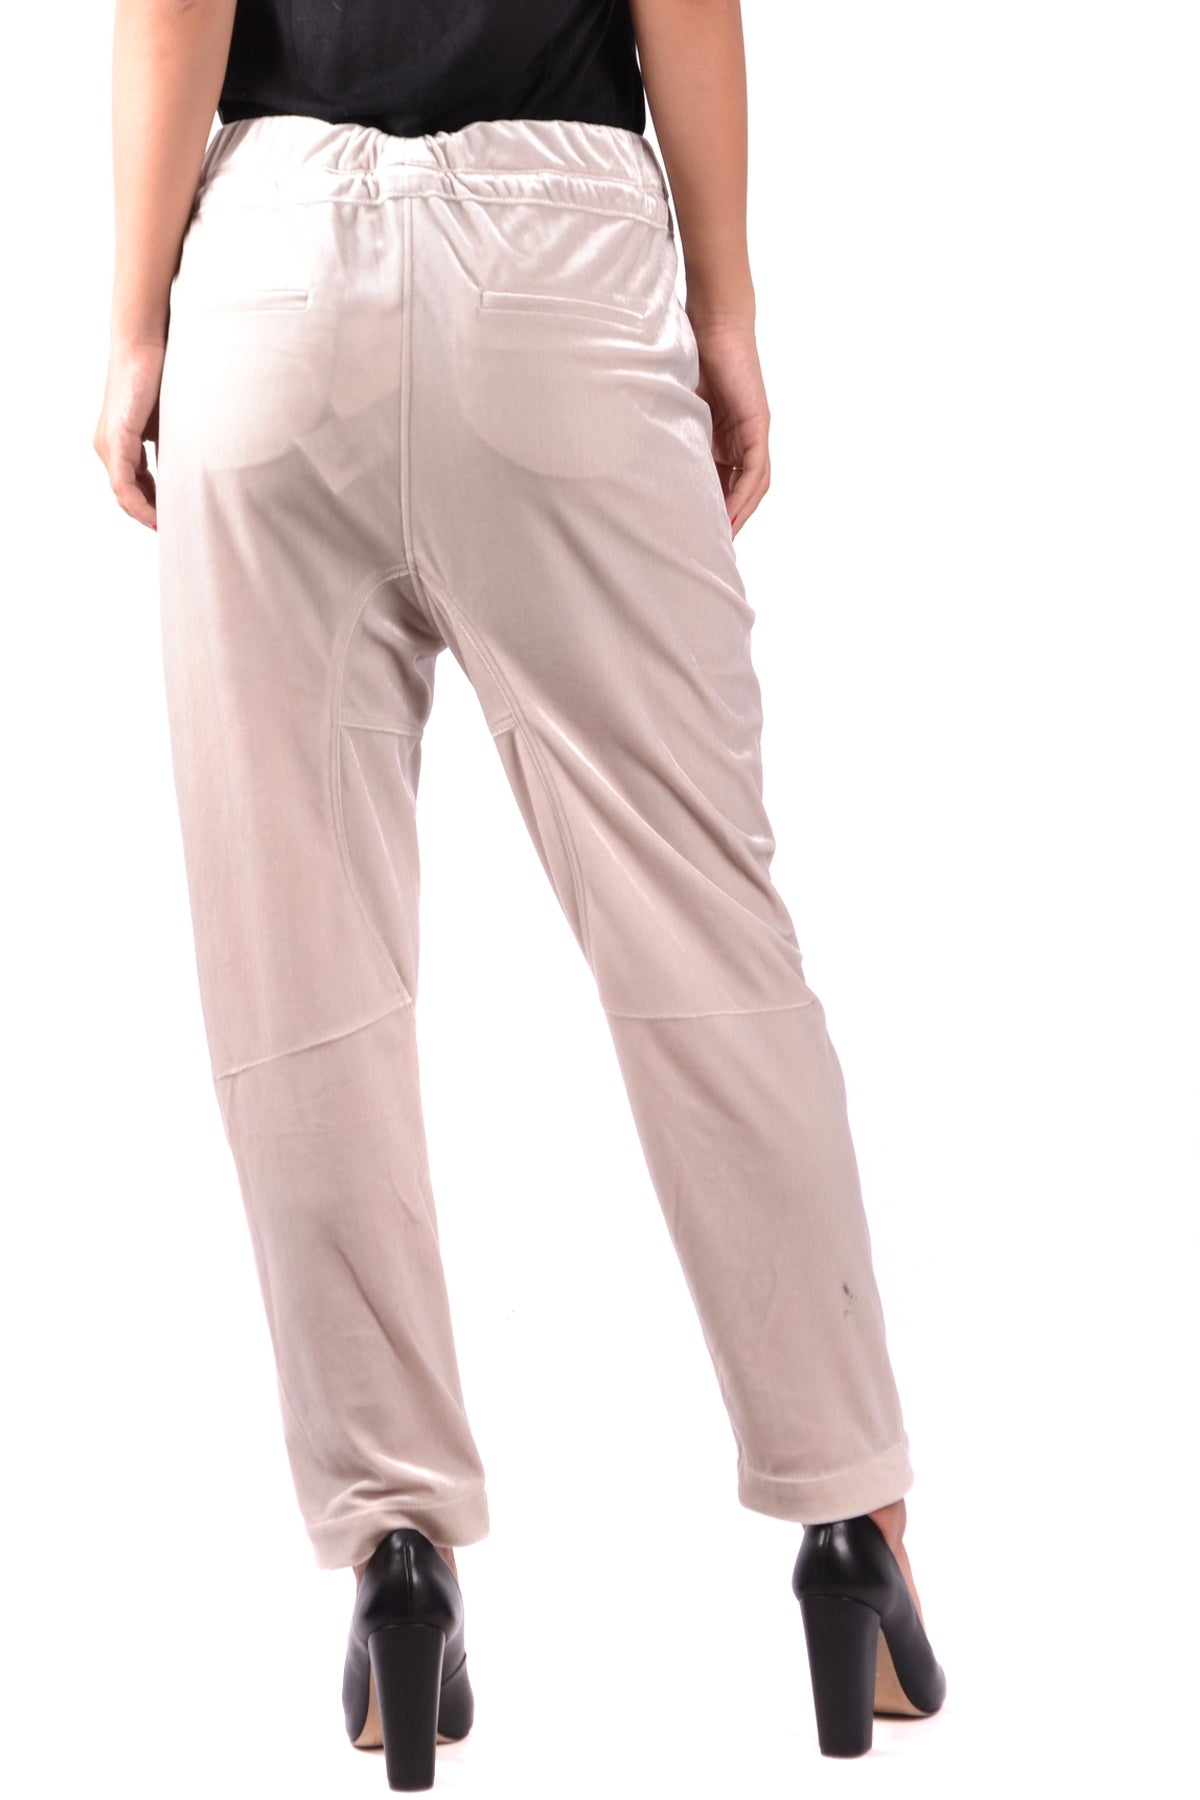 Trousers Brunello Cucinelli-Trousers - WOMAN-Product Details Terms: New With LabelYear: 2017Main Color: BeigeGender: WomanMade In: ItalySize: ItSeason: Fall / WinterClothing Type: TrousersComposition: Polyester 100%-Keyomi-Sook